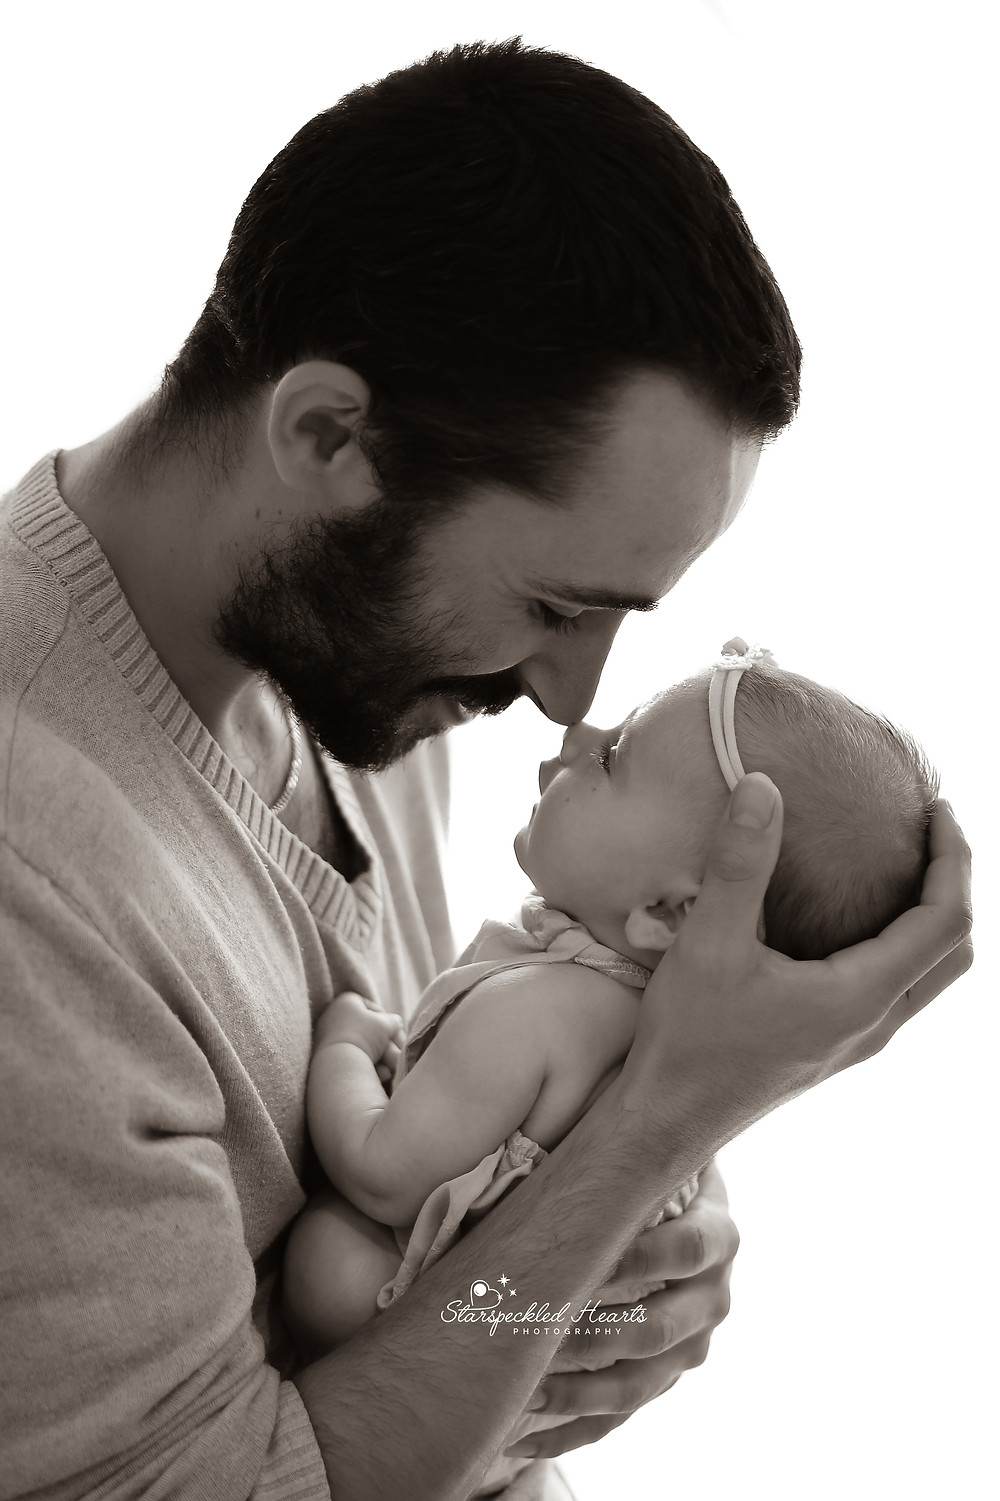 father holding his newborn baby girl up to his face, silhouetted black and white